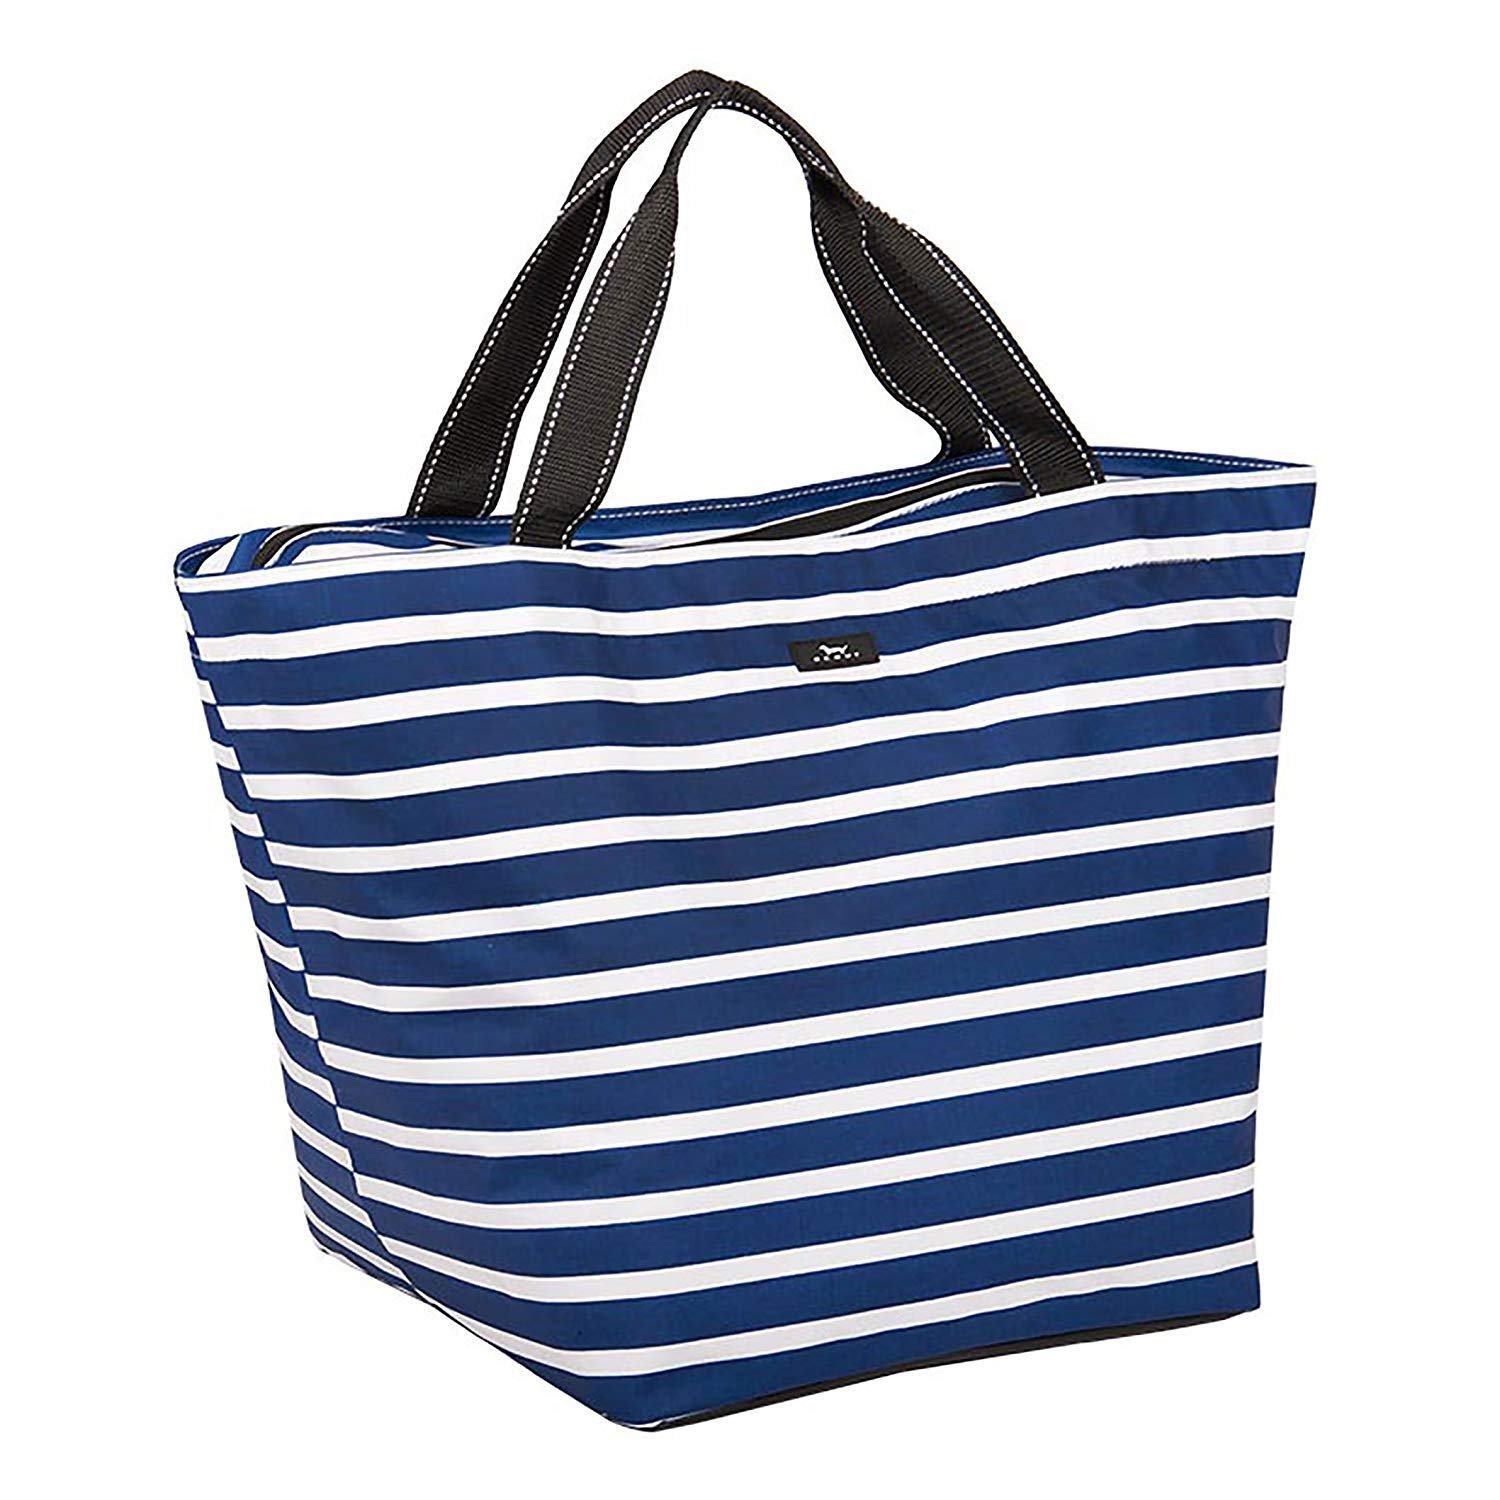 SCOUT Weekender Travel Bag, Lightweight Water-Resistent Travel Tote Bag or Beach Bag for Women Multiple Patterns Available